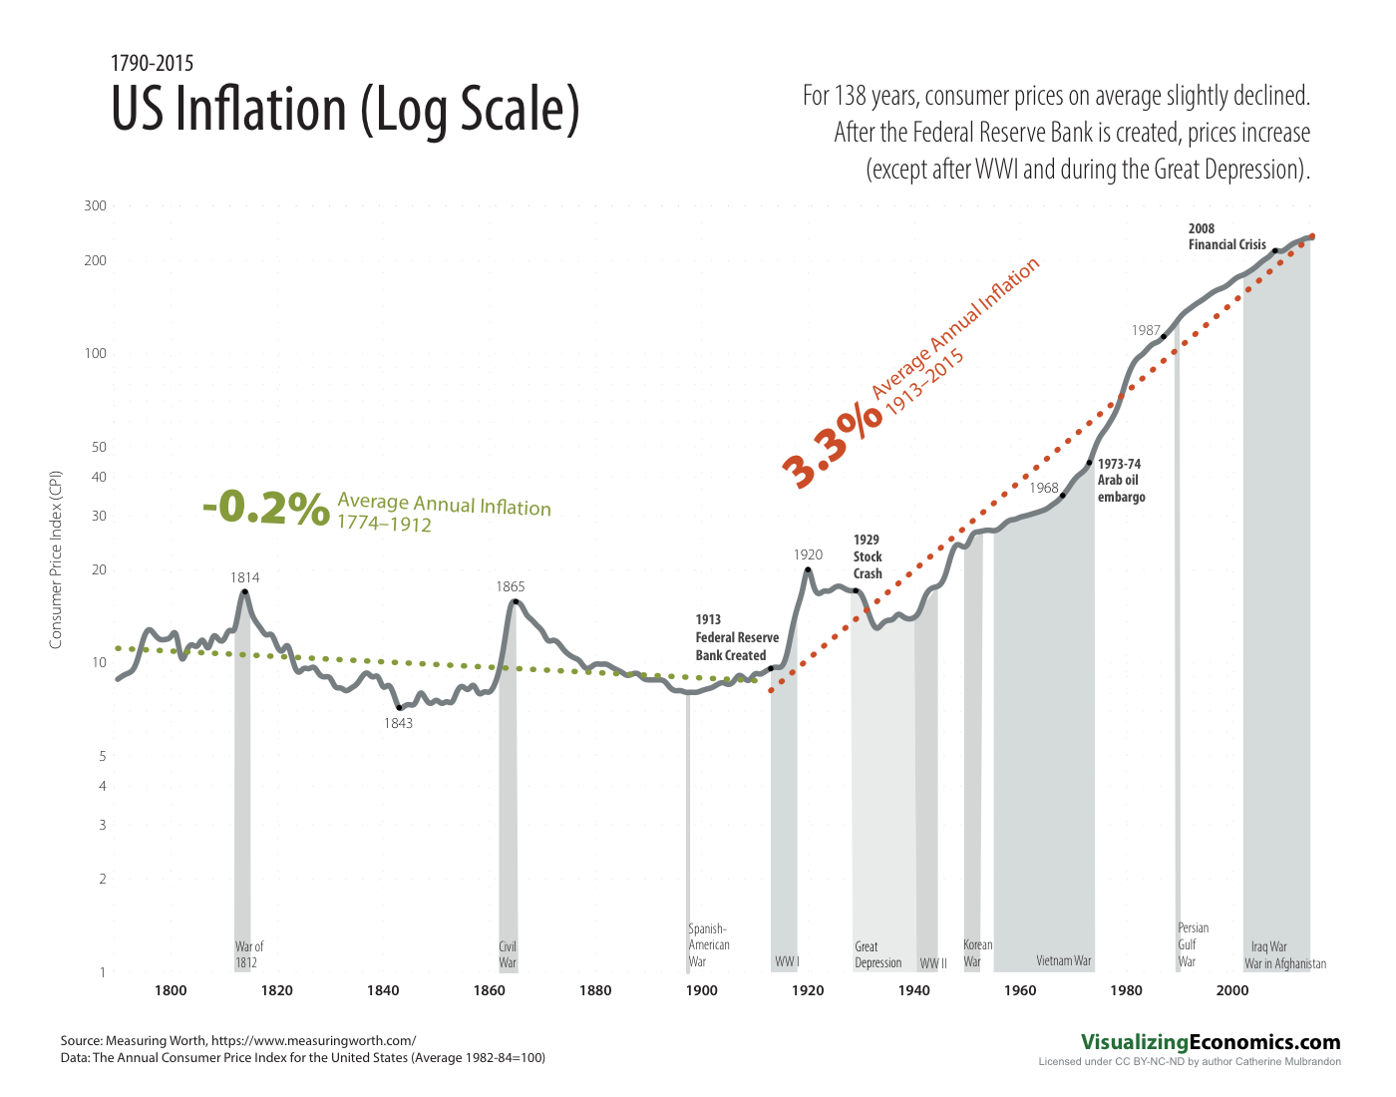 inflation before fed and after